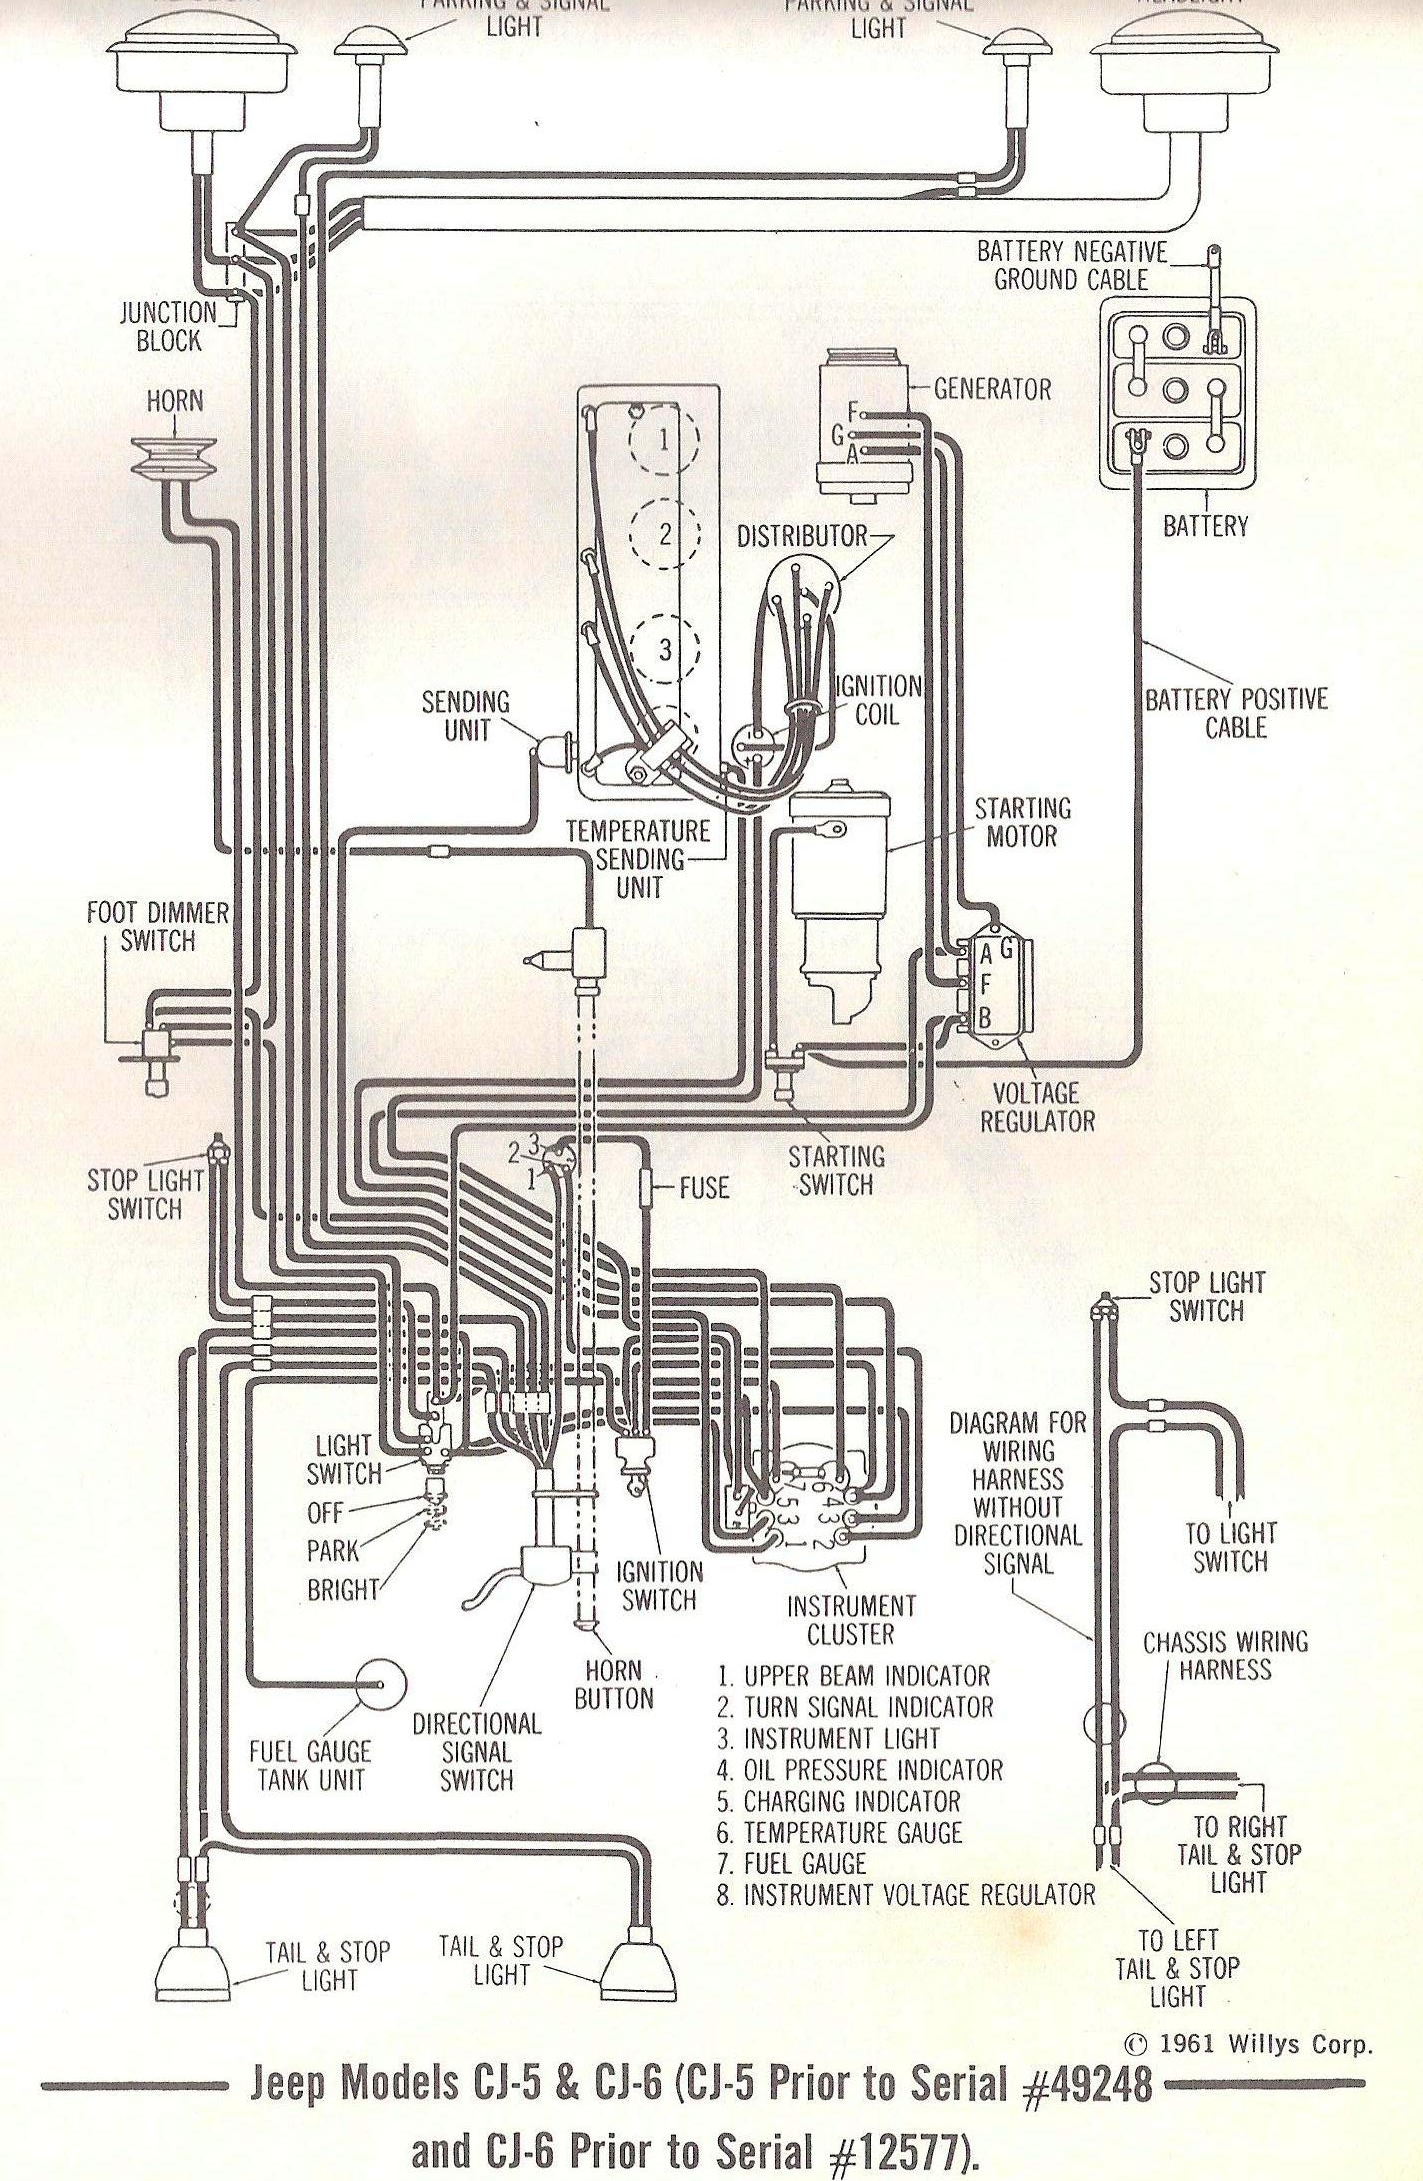 68 willys jeep wiring diagram - car radio wiring harness solder youtube for wiring  diagram schematics  wiring diagram schematics